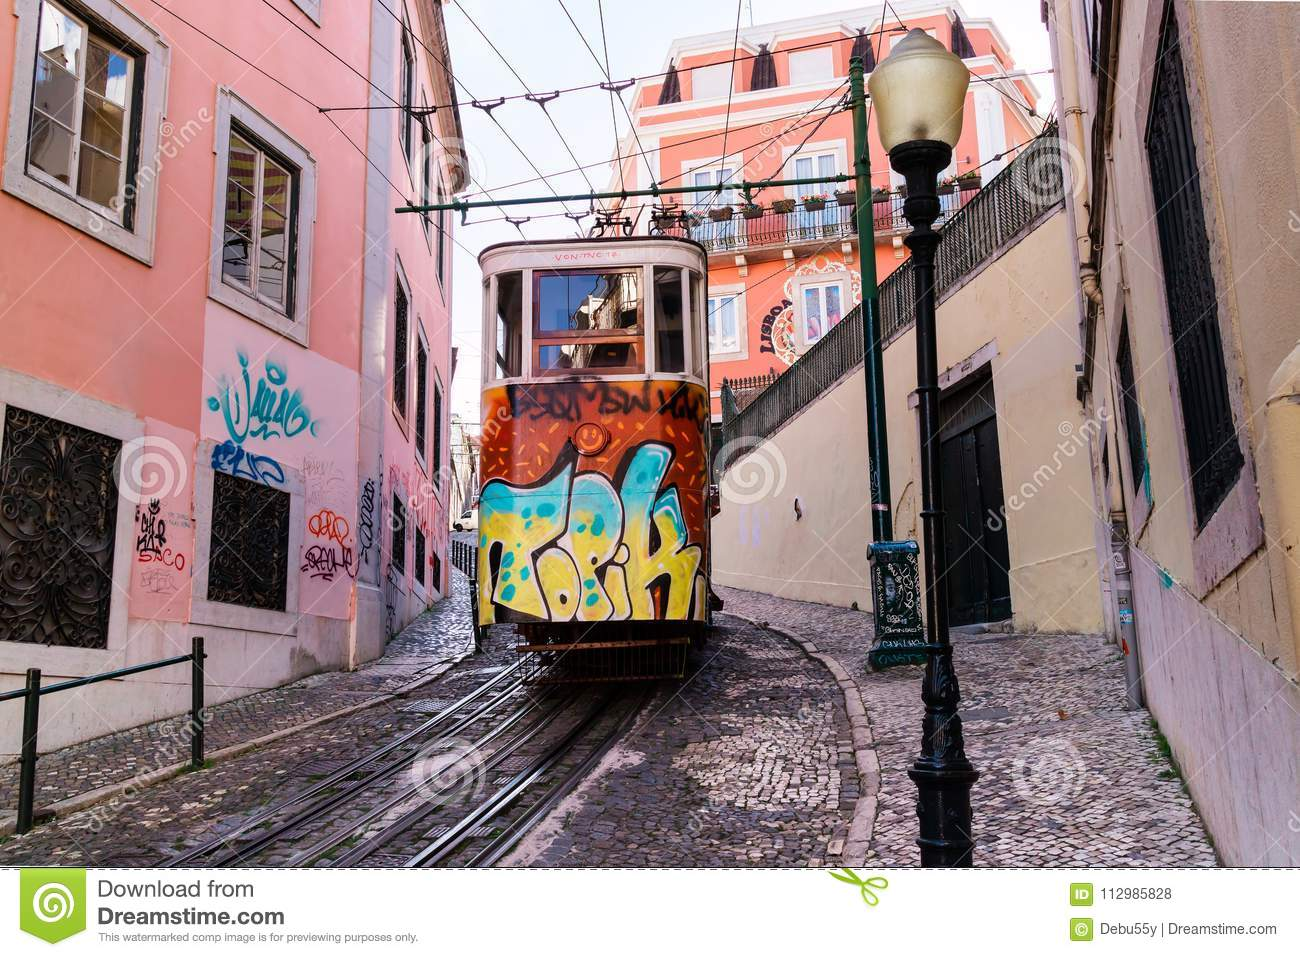 Vintage street car in the old city centre of Lisbon.